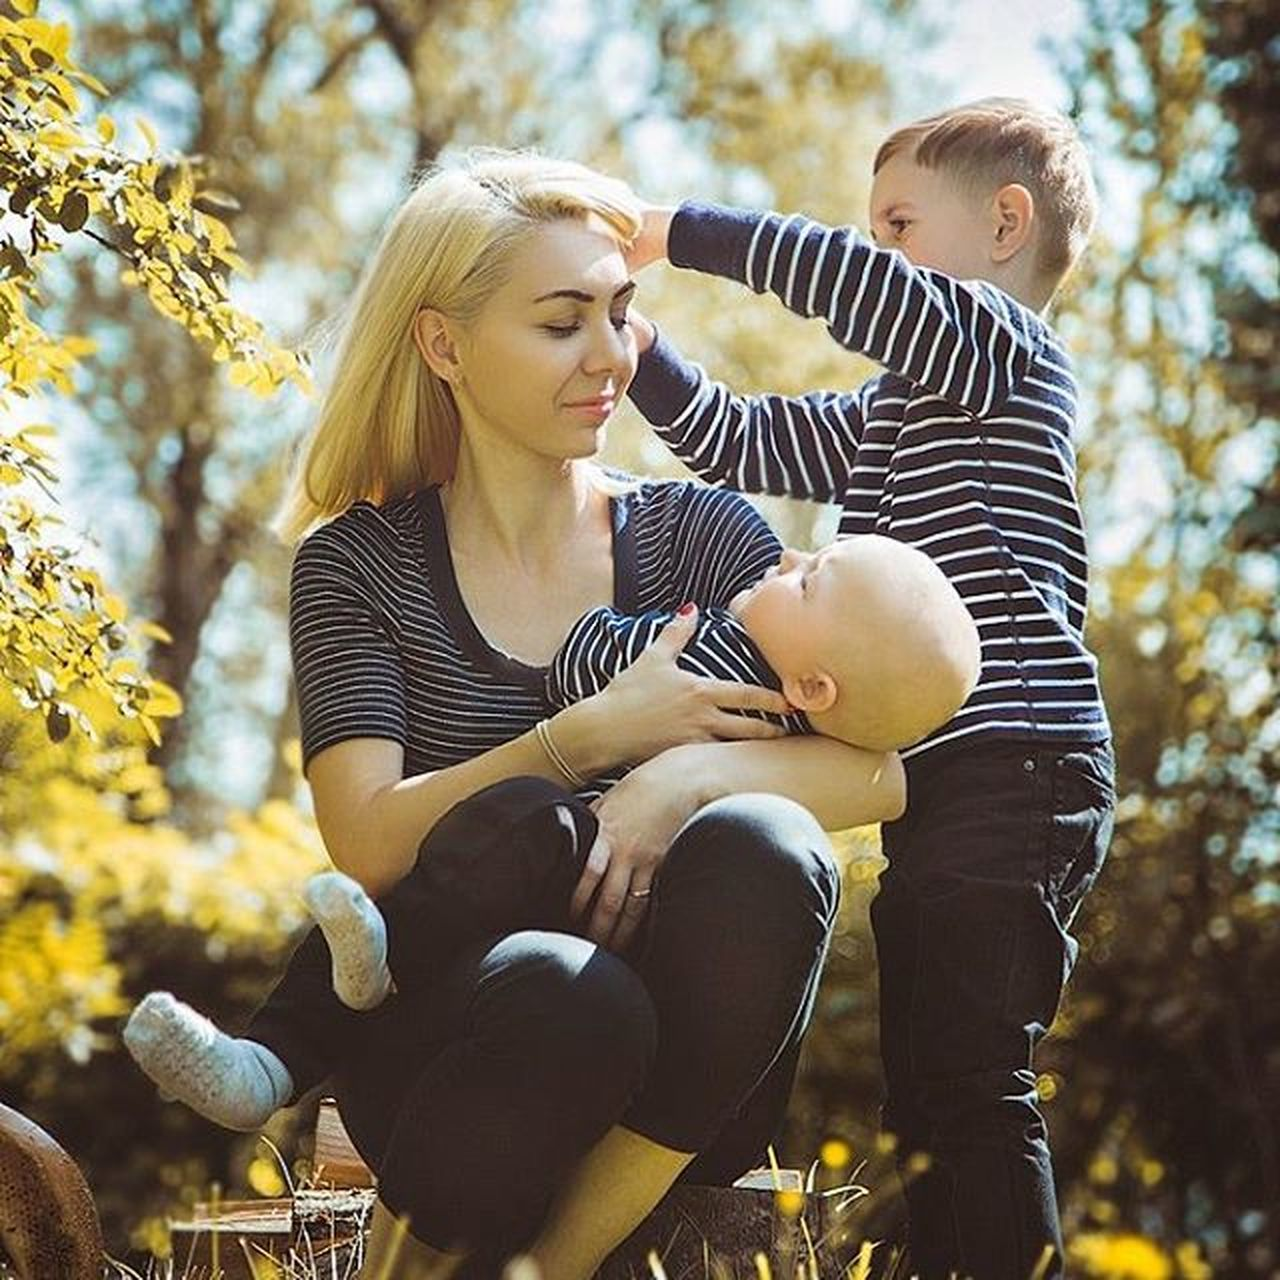 family with one child, adult, family, males, blond hair, togetherness, son, mother, people, child, mid adult, baby, parent, casual clothing, father, happiness, females, tree, love, sitting, outdoors, bonding, childhood, autumn, daughter, men, day, holding, full length, women, young adult, nature, sky